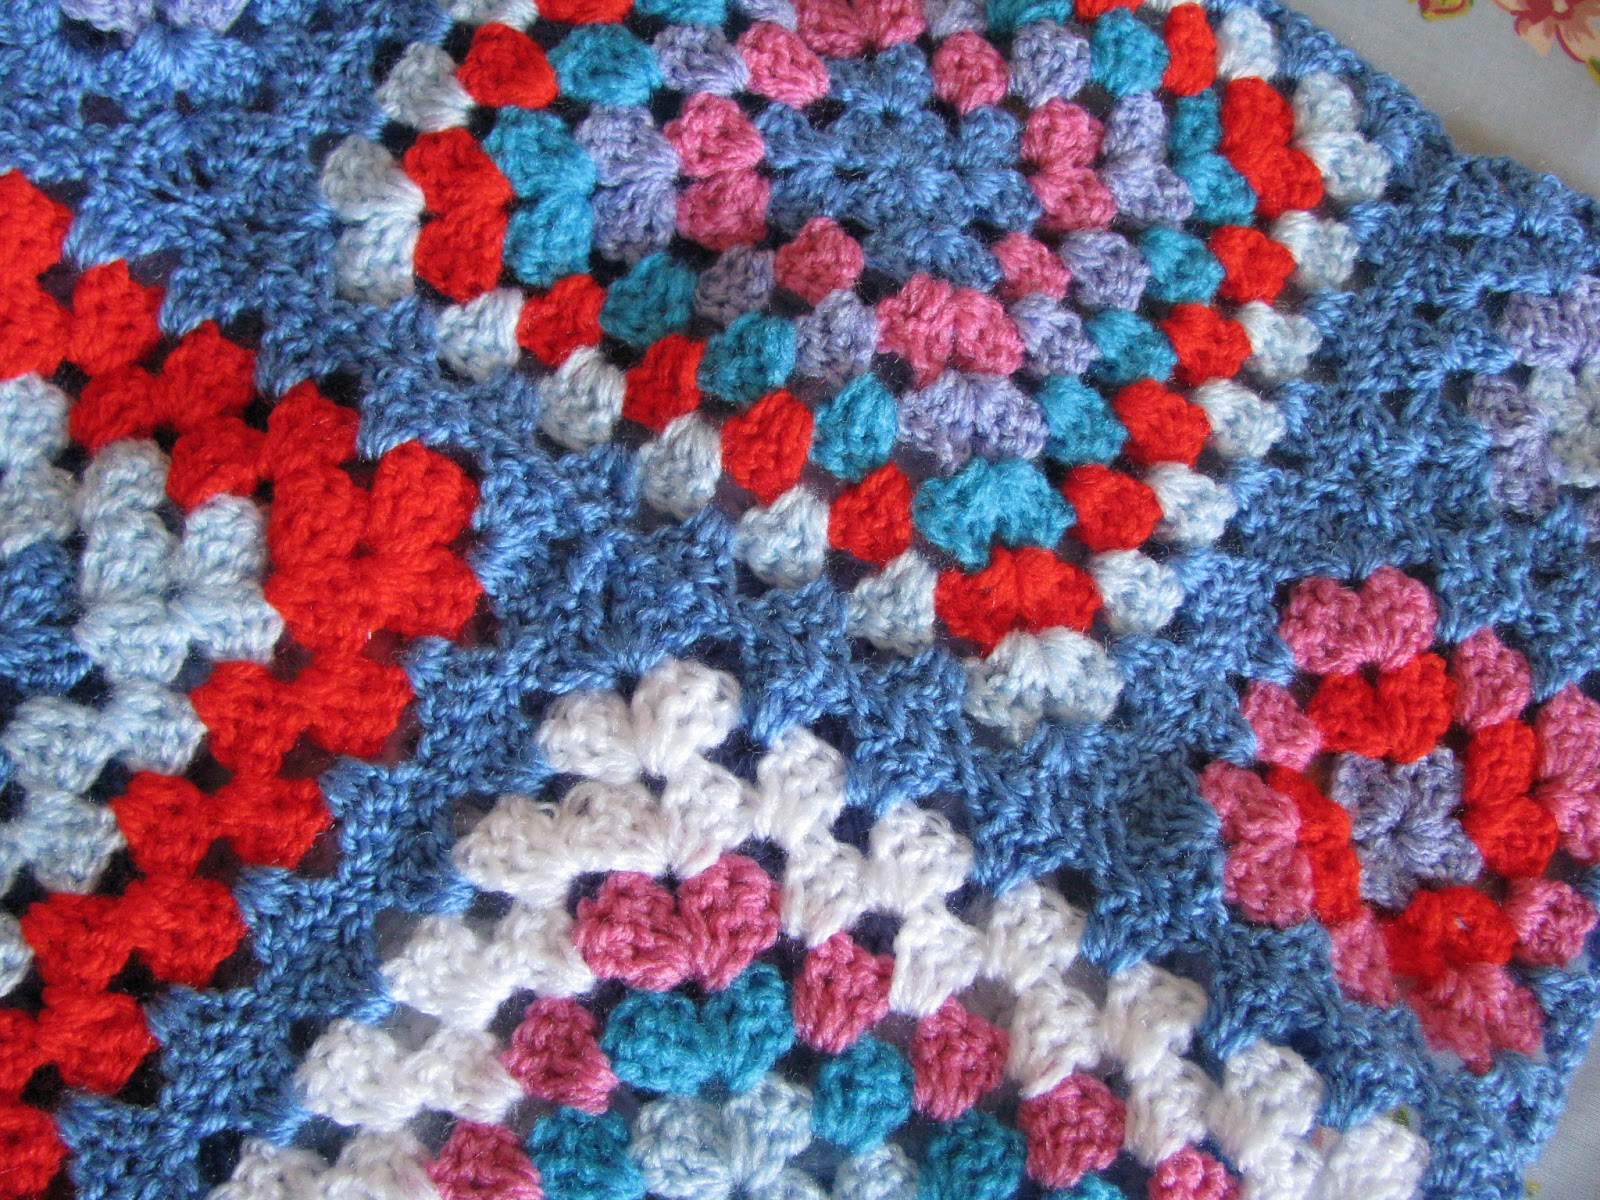 Crocheting Granny Squares : Crochet Granny Squares Patterns myideasbedroom.com